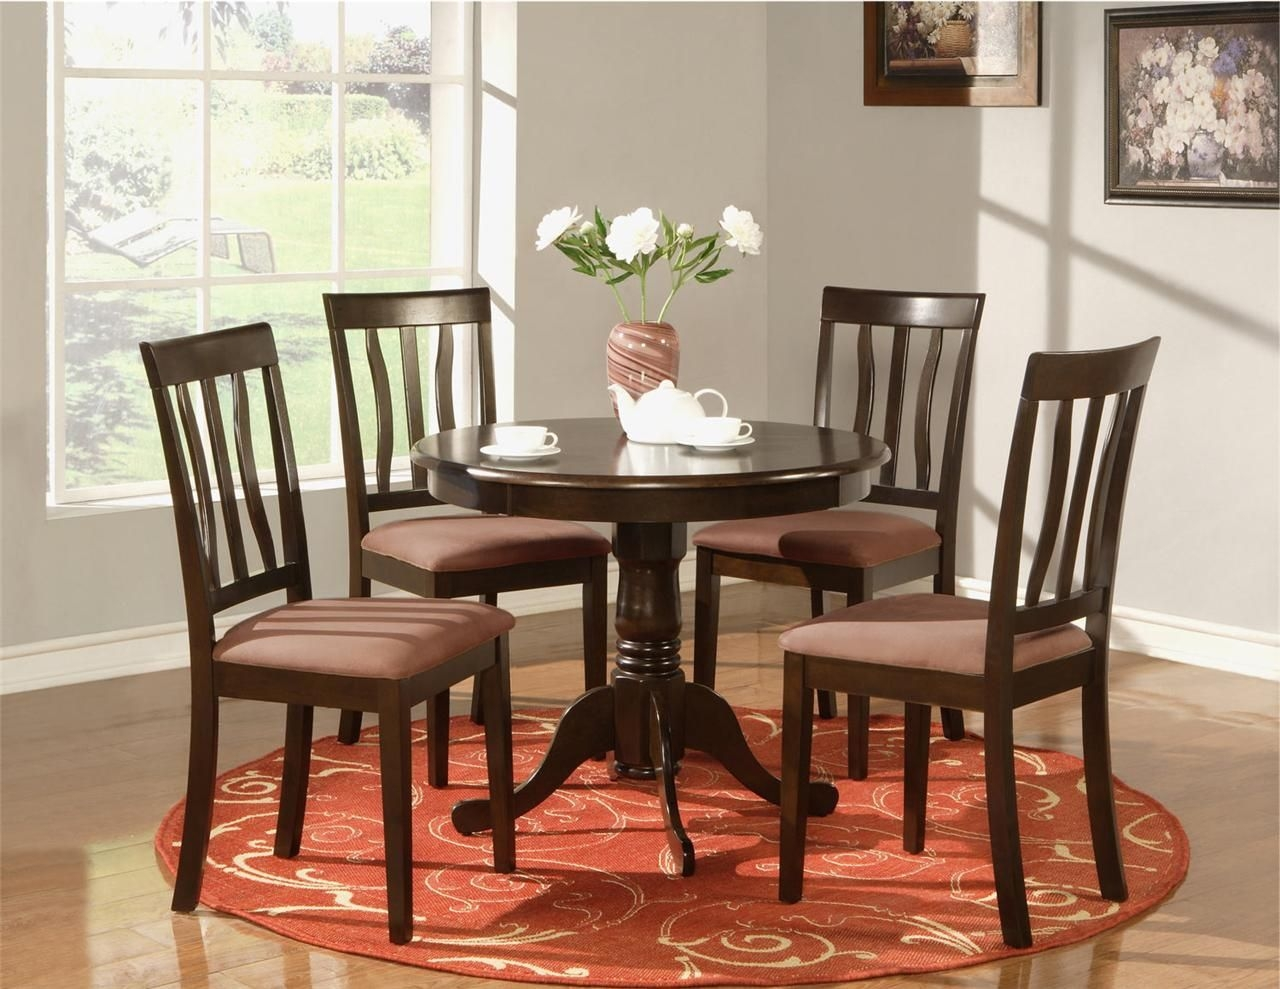 5 Pc Round Table Dinette Kitchen Table And 4 Chairs  Ebay